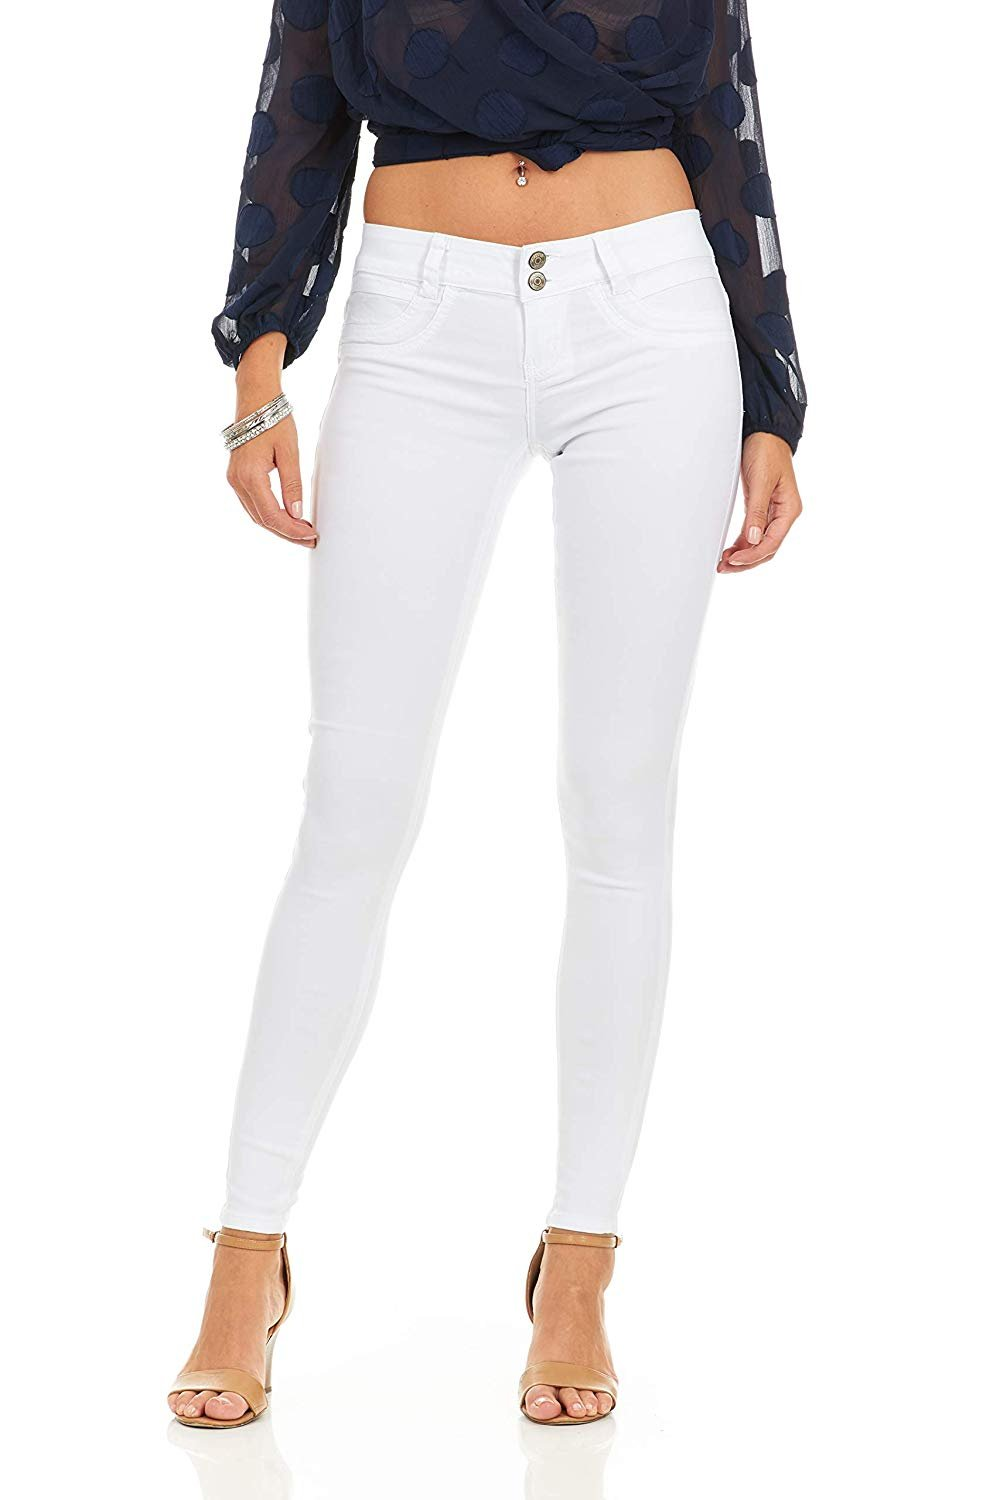 VIP Jeans Pants for women | Ultra Skinny Cigarette Butt Lift Slim Fit Extra Stretch pants comfy office wear | Junior sizes in stylish colors